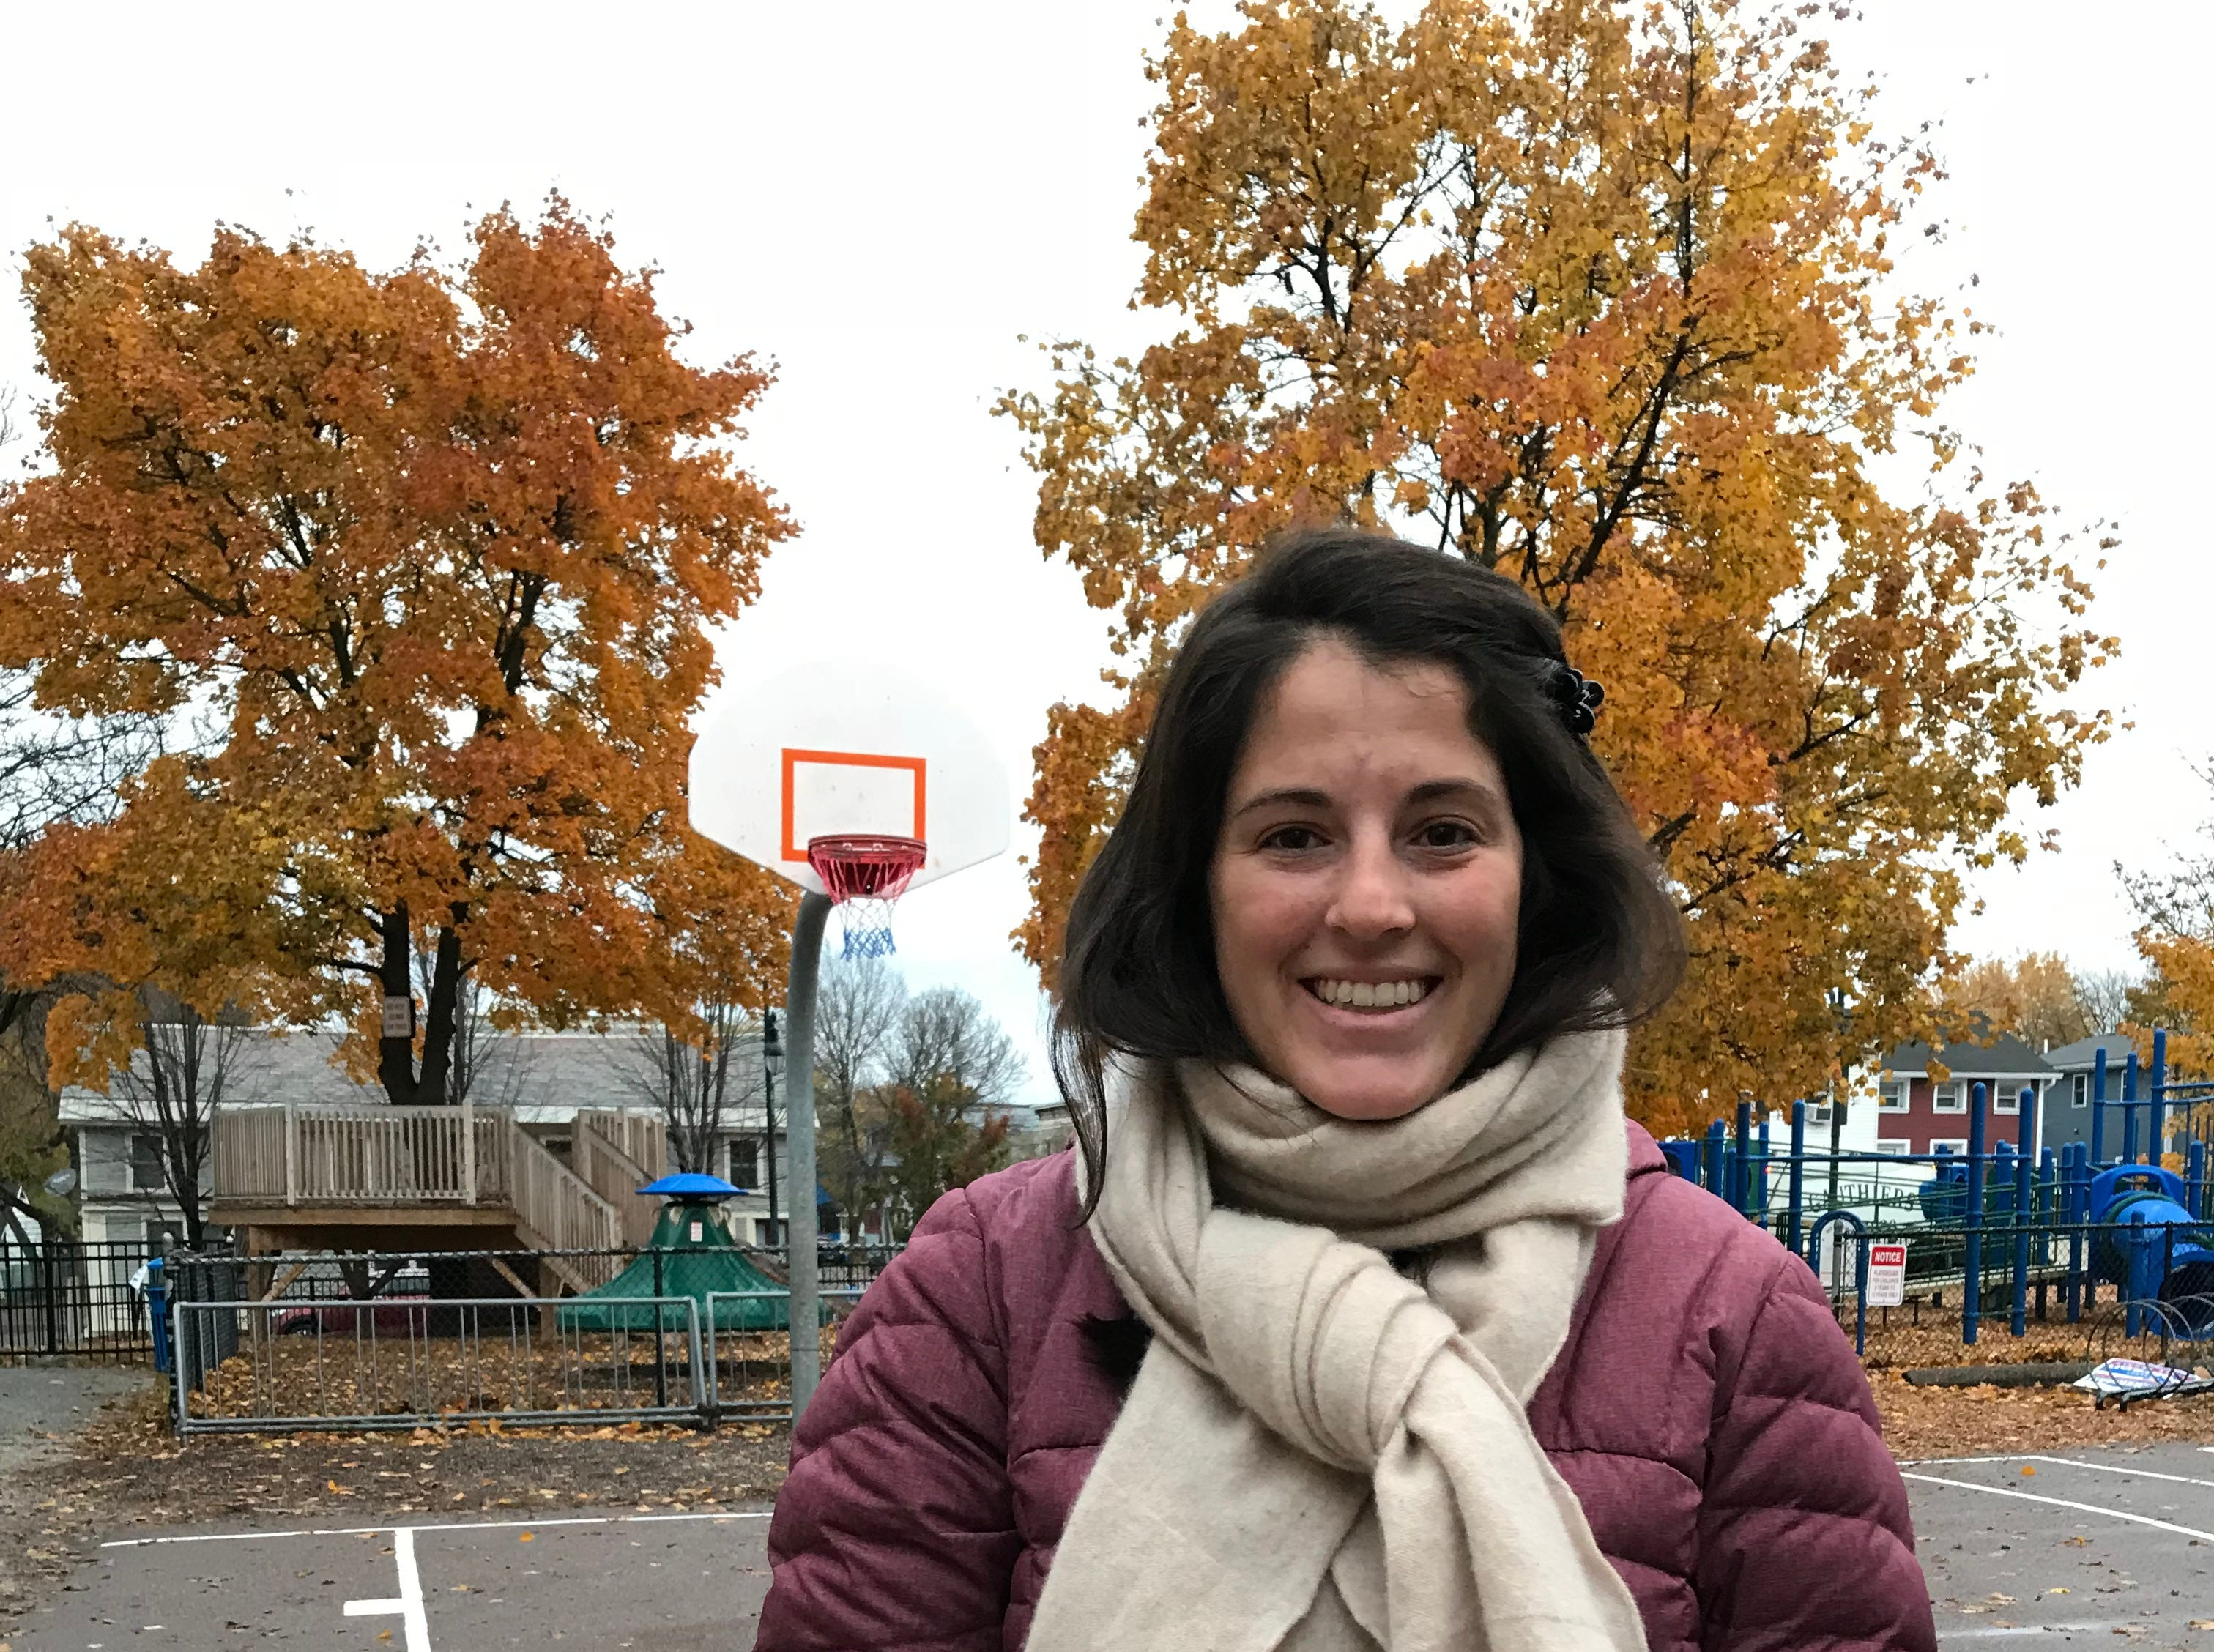 Katie Paige voted at the Old North End Sustainability Academy at Lawrence Barnes, Burlington's Ward 3, on Tuesday, Nov. 6, 2018.